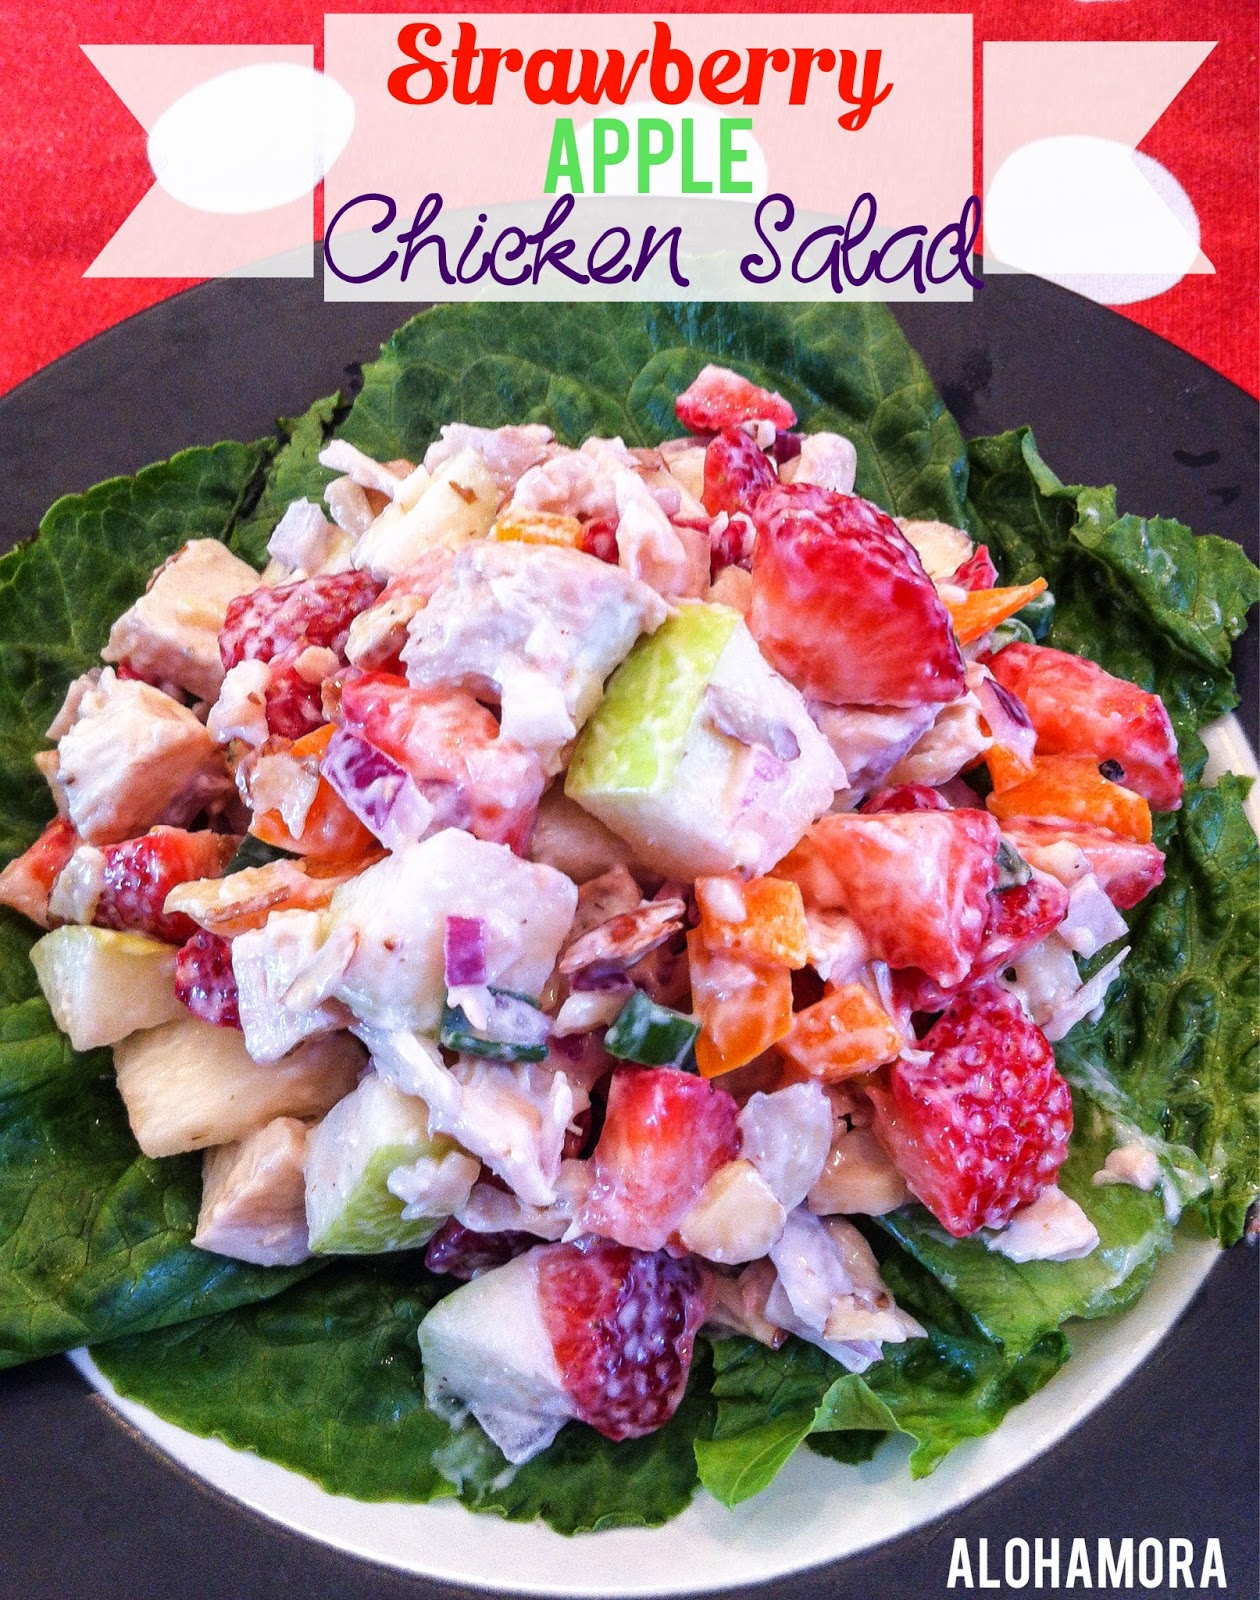 Strawberry Apple Chicken Salad.  Easy to make, ridiculously flavorful, lite and healthy with plenty of the good stuff in it.  Eat it with bread or chips/crackers.  Alohamora Open a Book http://alohamoraopenabook.blogspot.com/